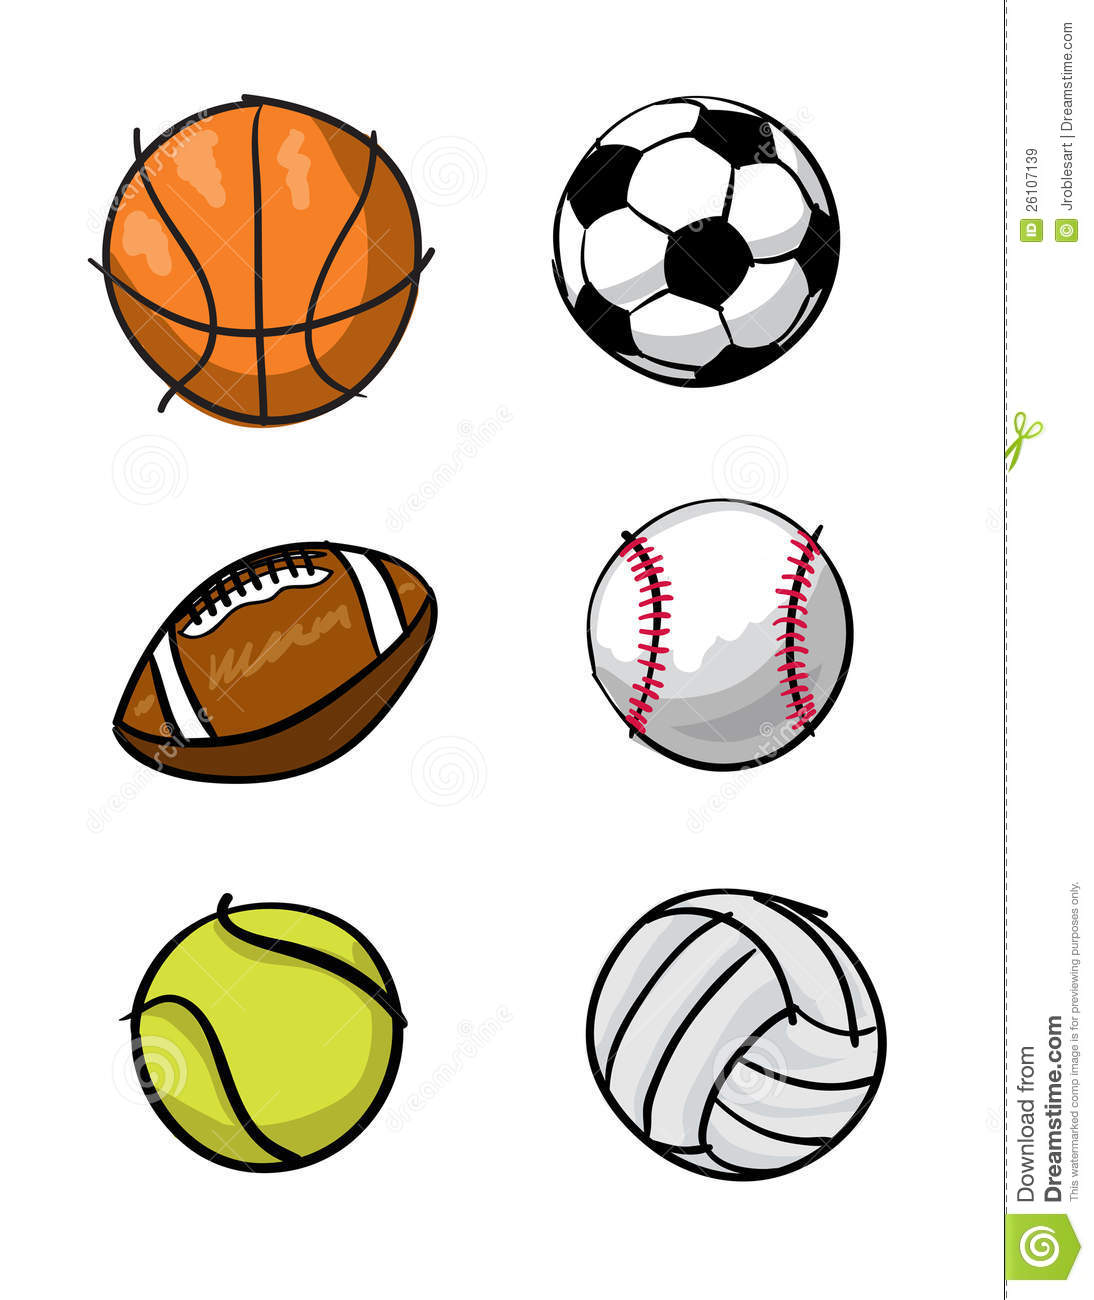 royalty free stock photo download kids sports 1istock_000024345023small - Sports Images For Kids